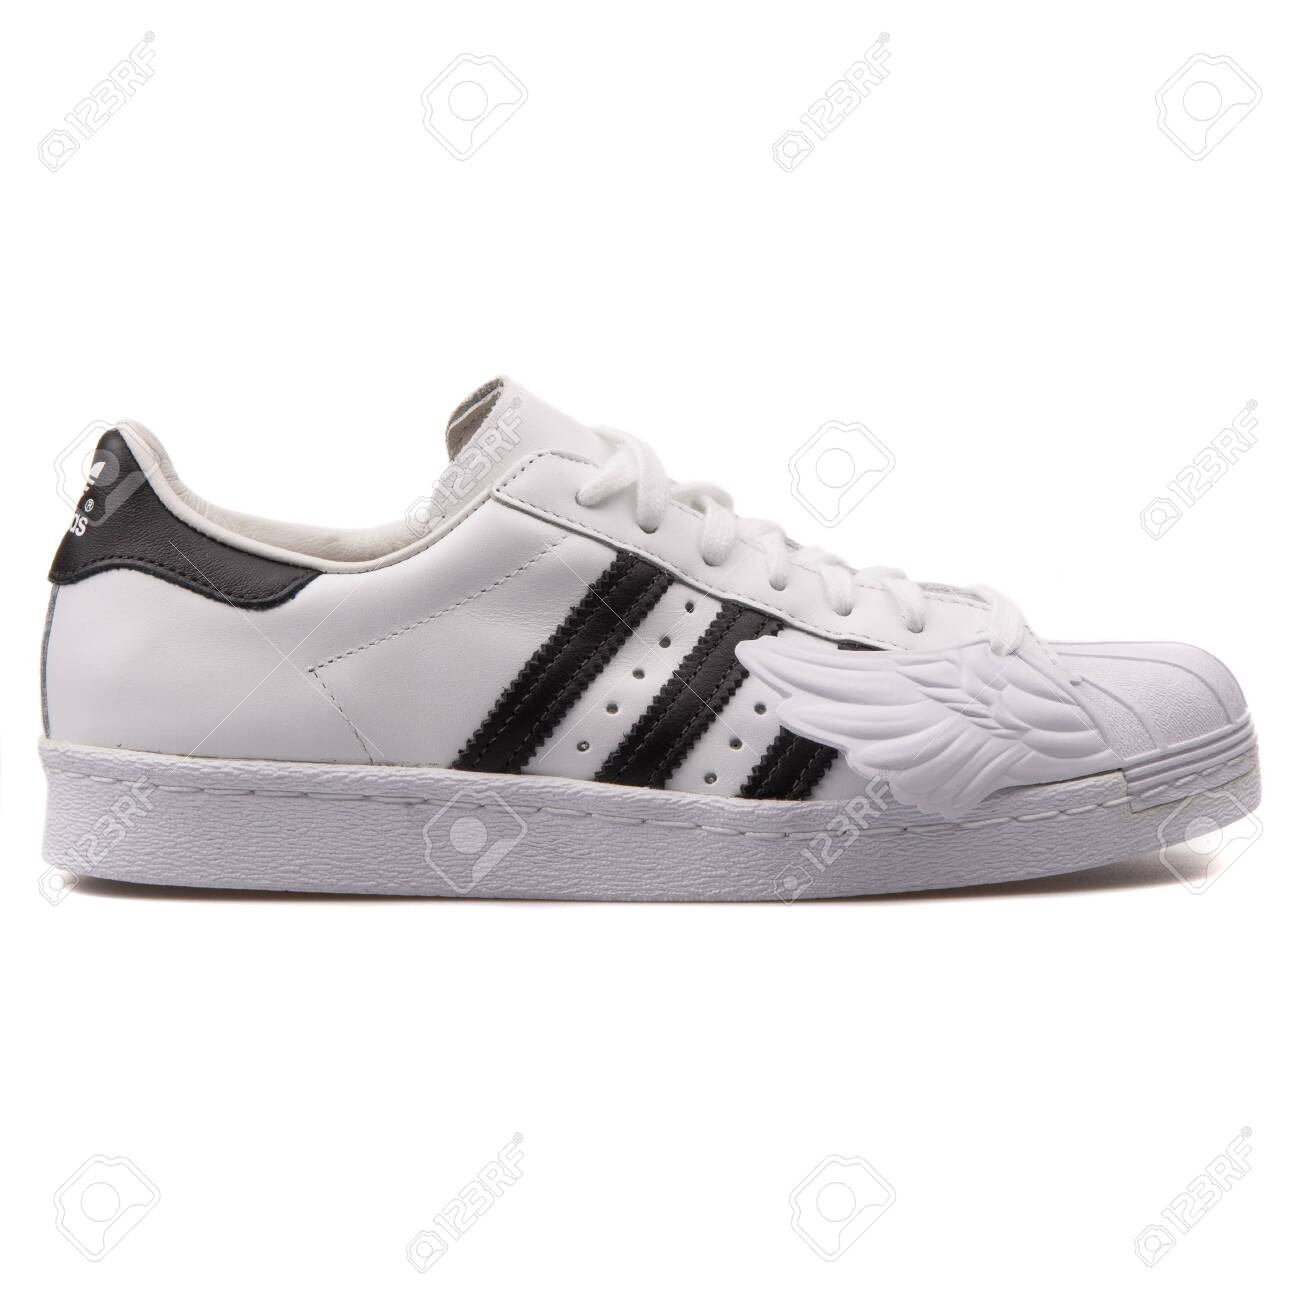 Adidas white and black wing shoes | Adidas sneaker, Adidas